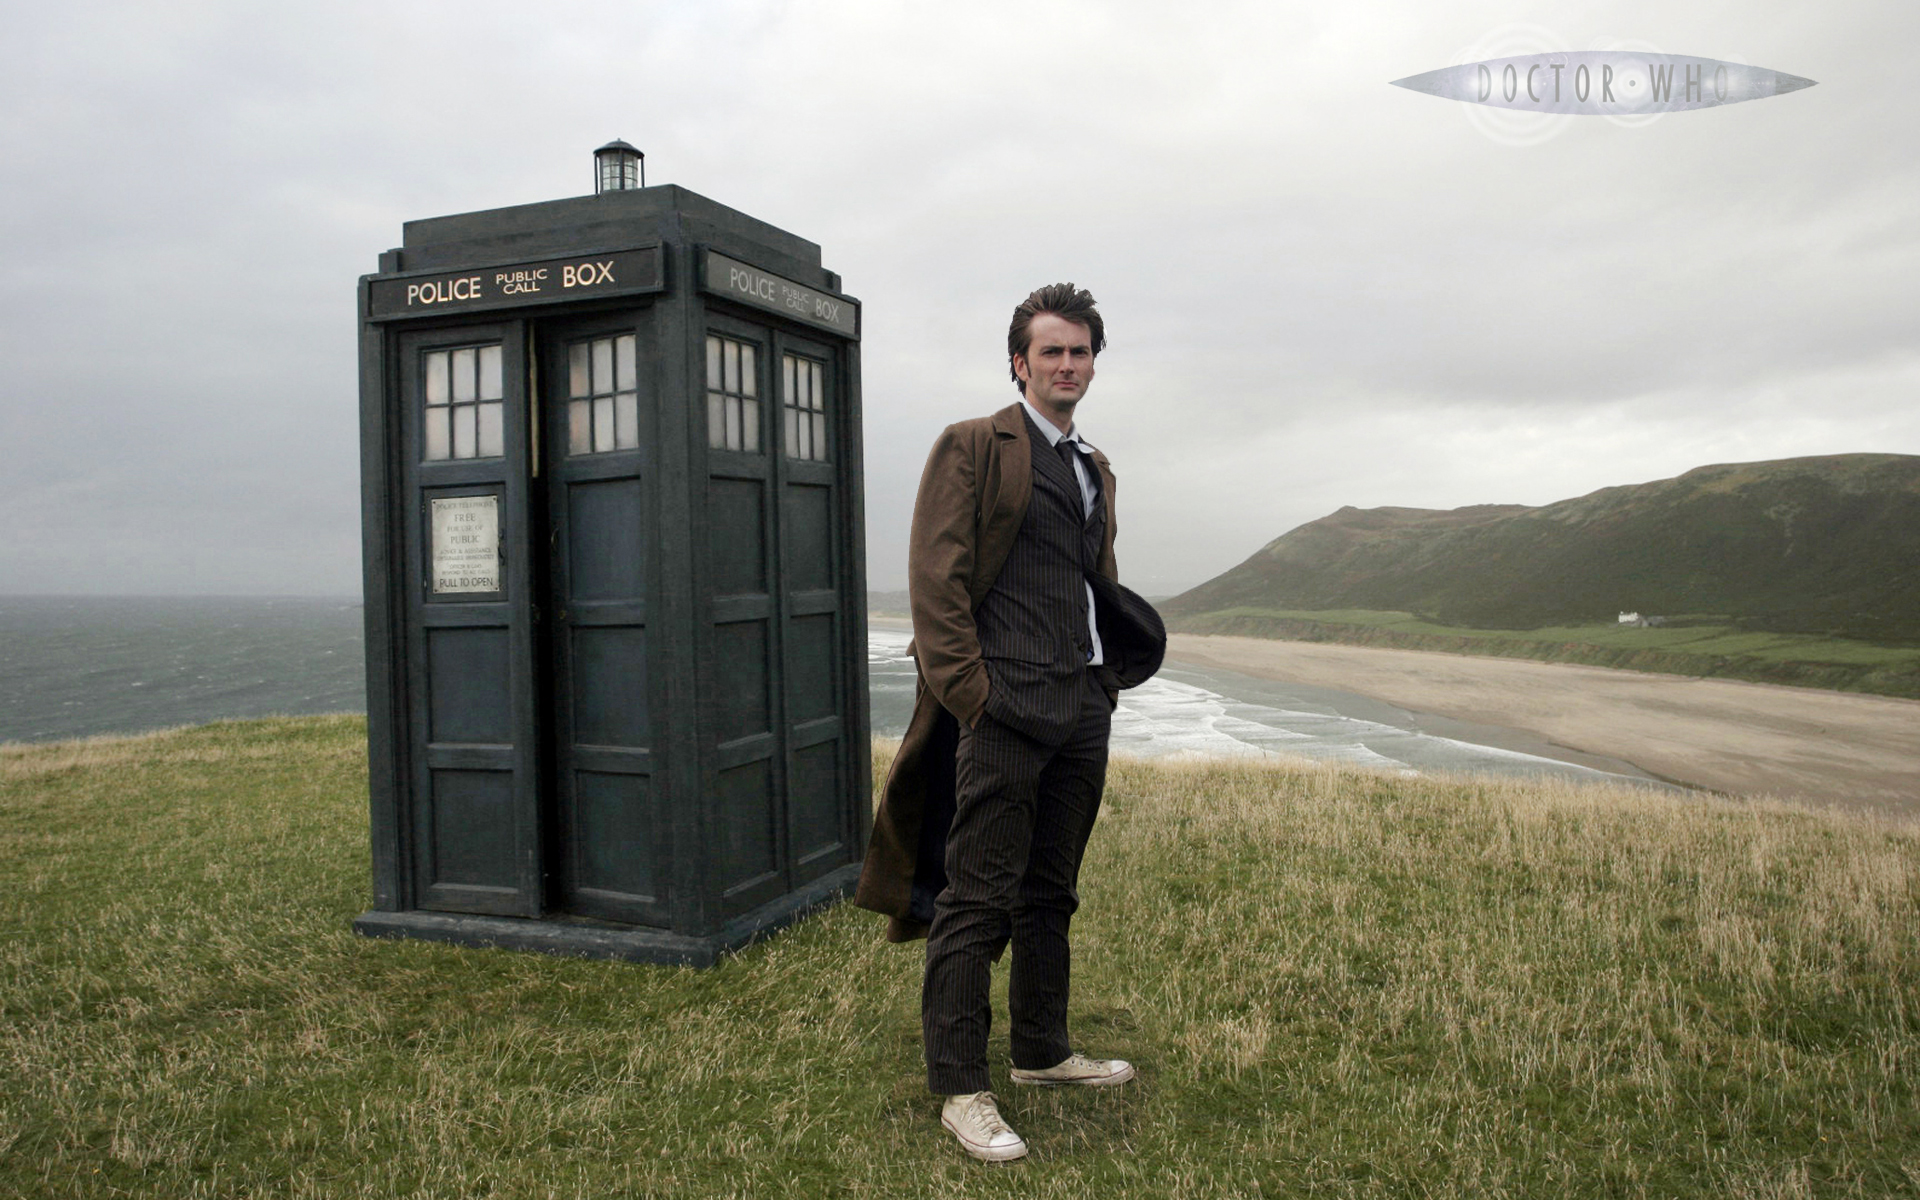 Tardis David Tennant Doctor Who Tenth Doctor Wallpaper 1920x1200